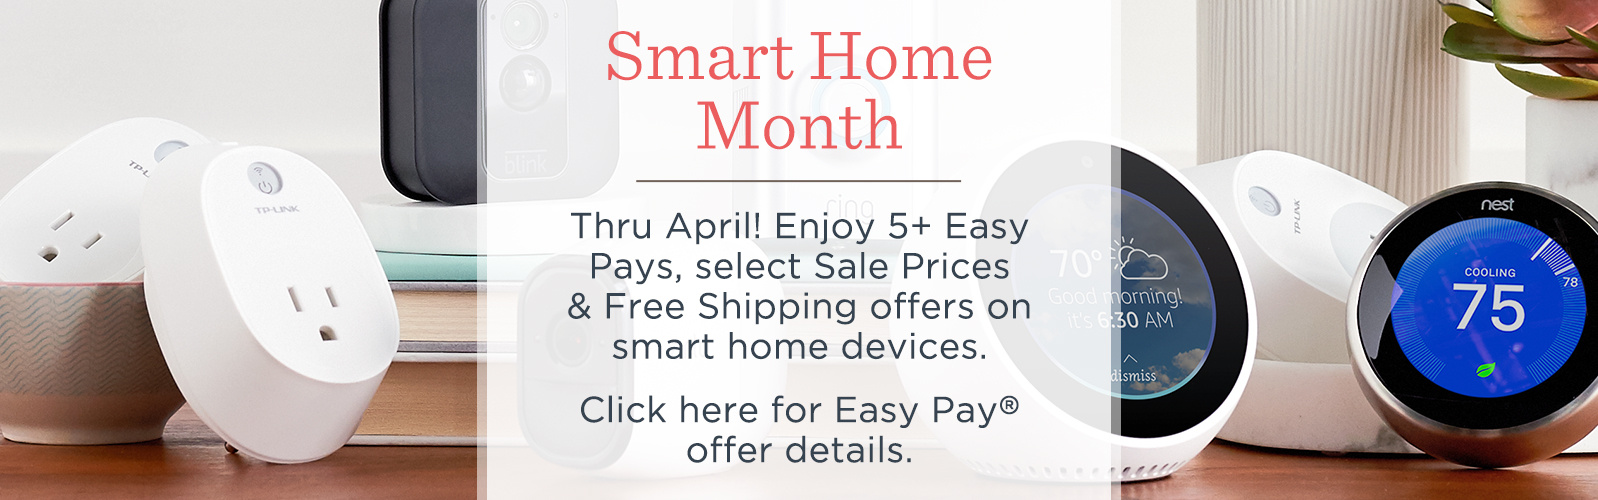 Smart Home Month.   Thru April! Enjoy 5+ Easy Pays, select Sale Prices & Free Shipping offers on smart home devices.  Click here for Easy Pay® offer details.